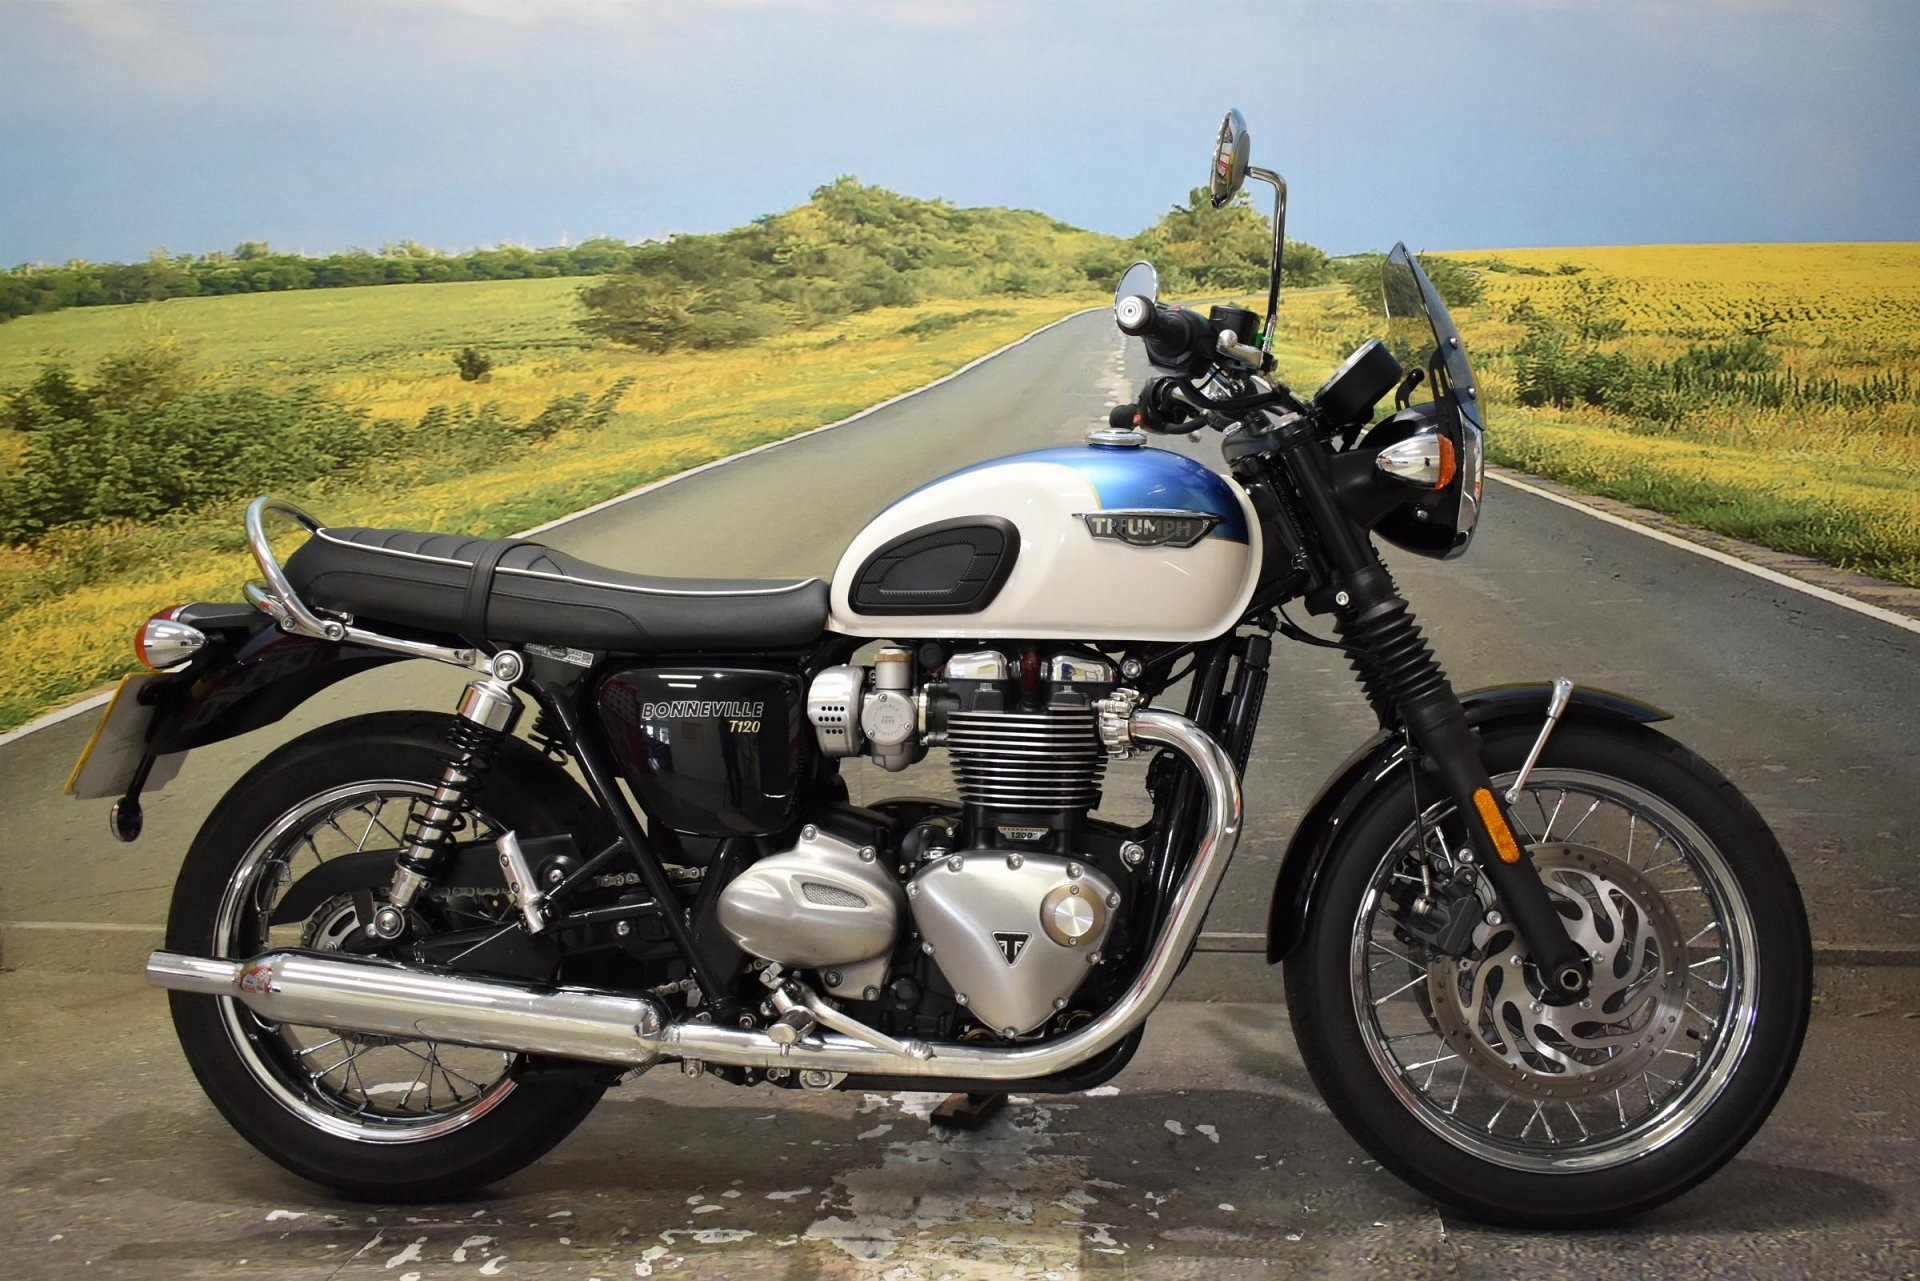 2018 Triumph Bonneville T120 for sale in Derbyshire